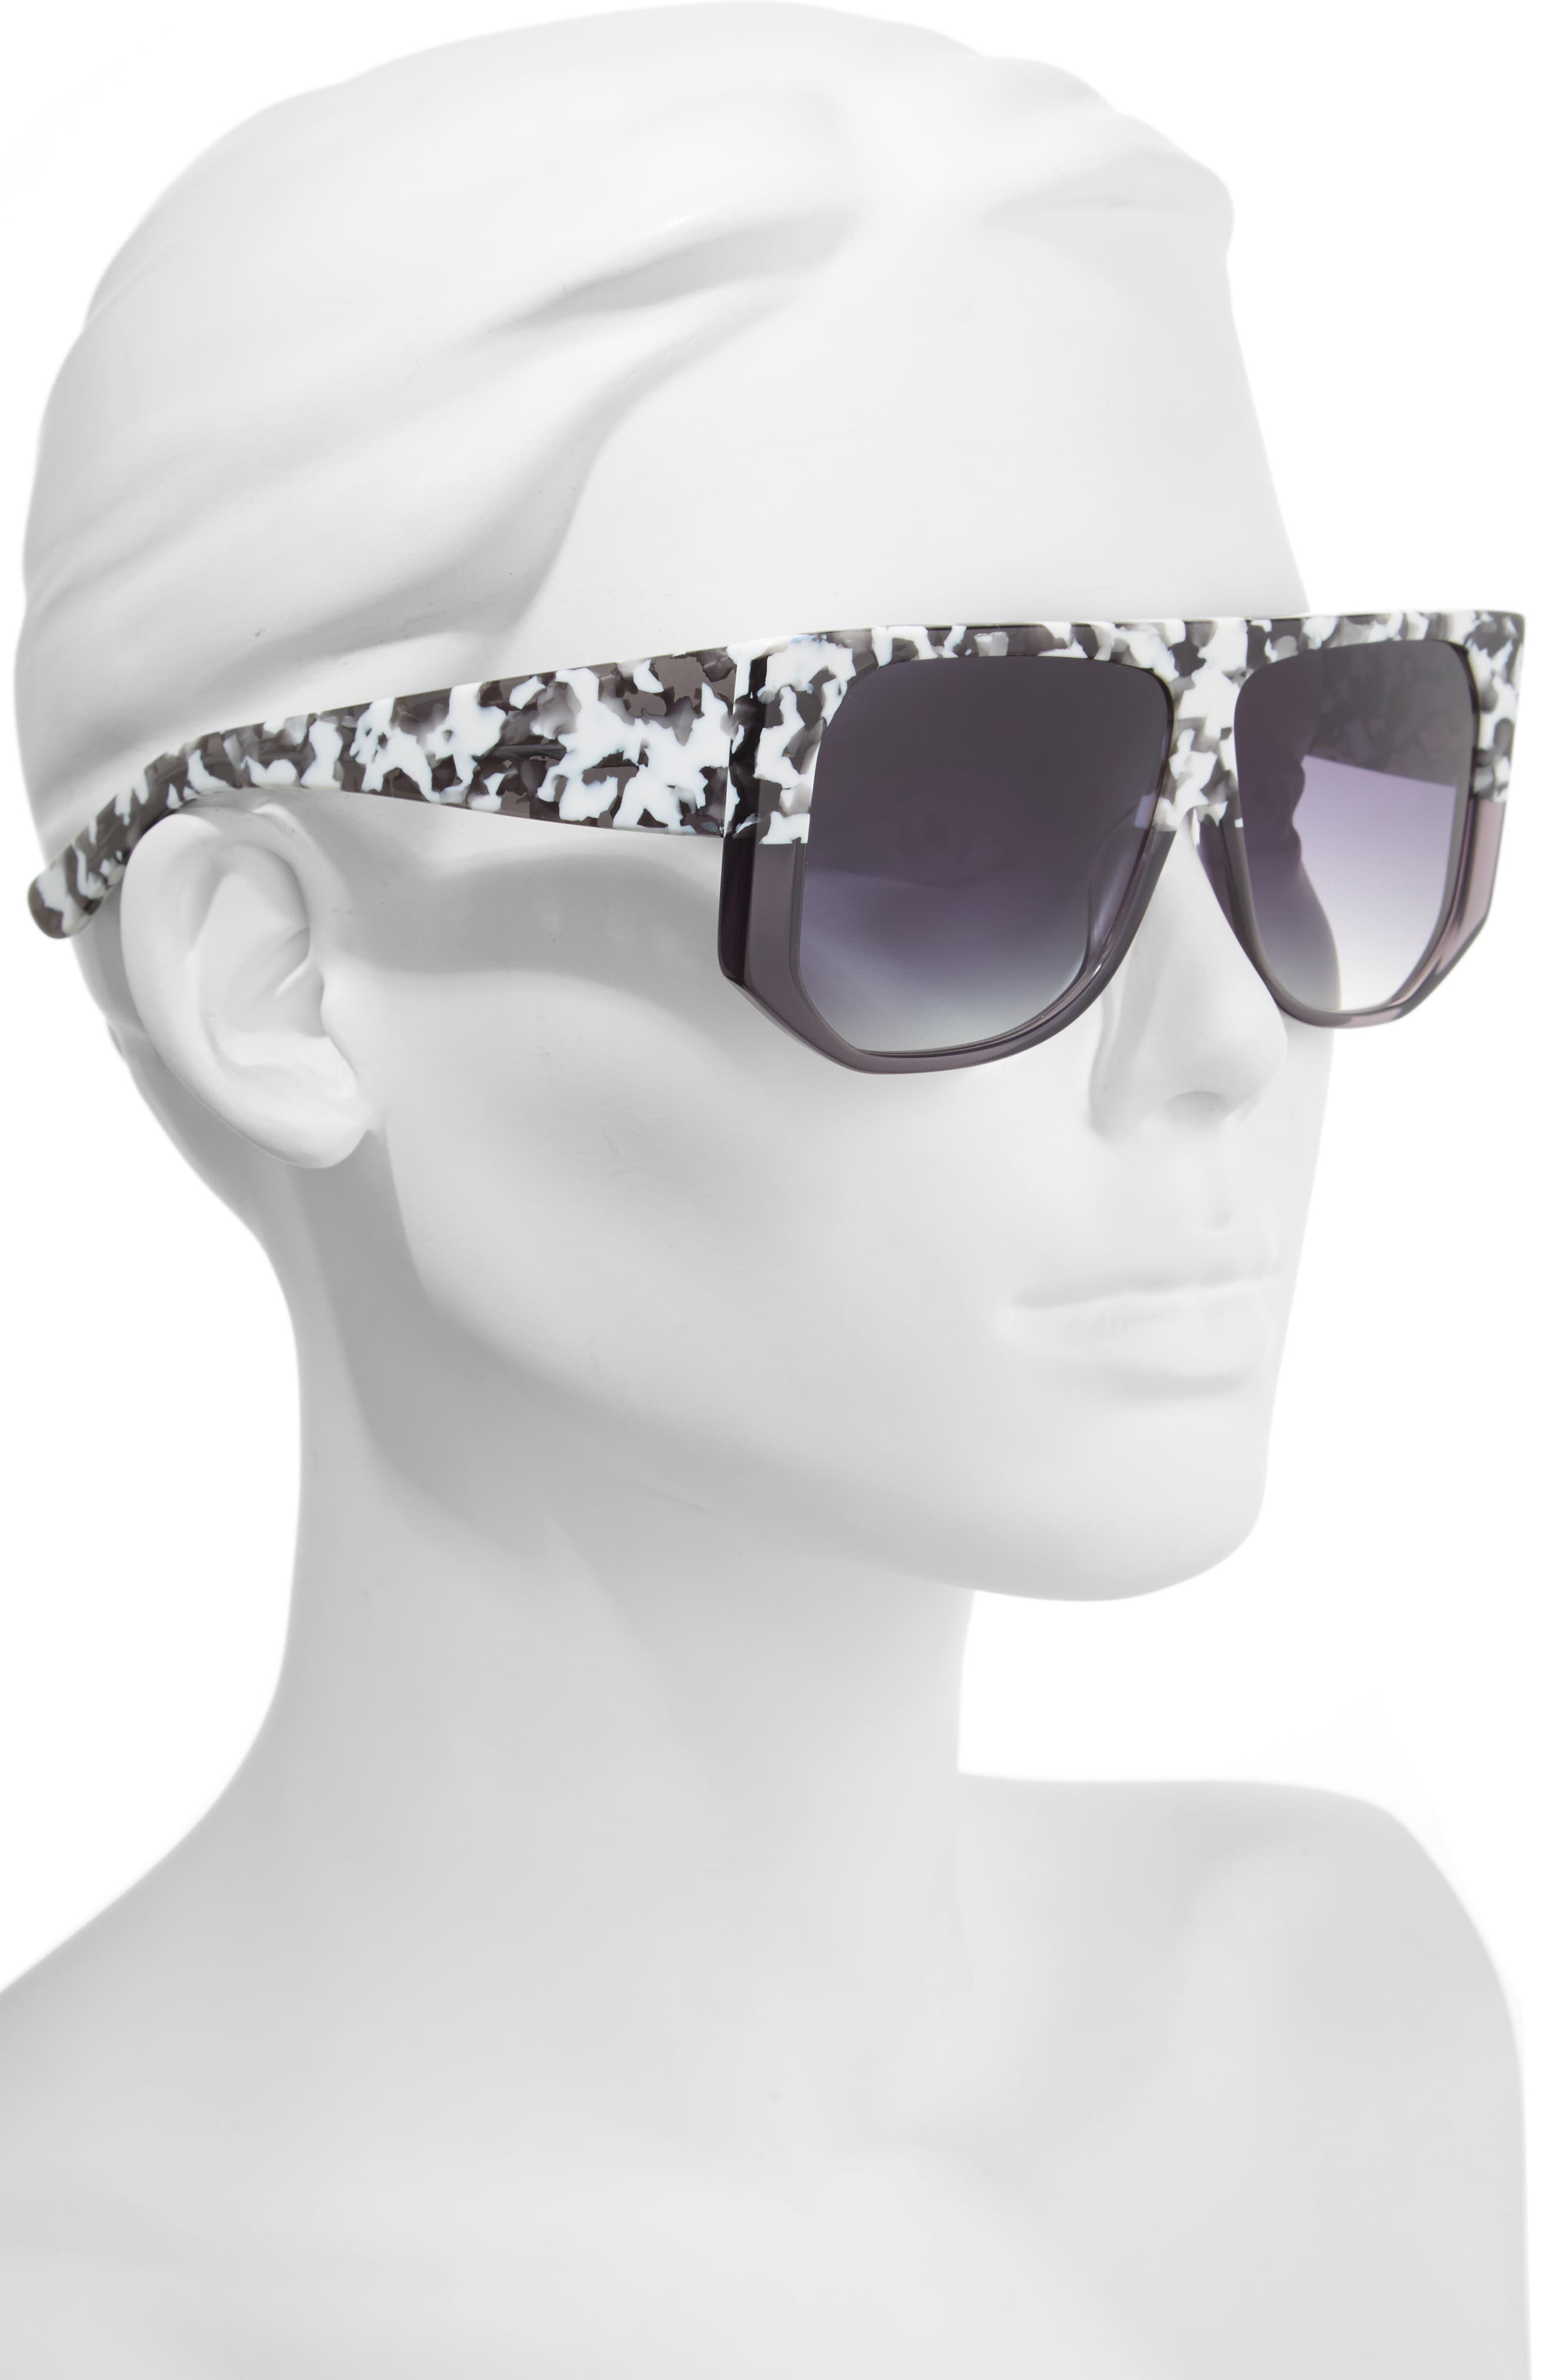 Frequent Flyer 58mm Sunglasses,                             Alternate thumbnail 2, color,                             WHITE CAMO